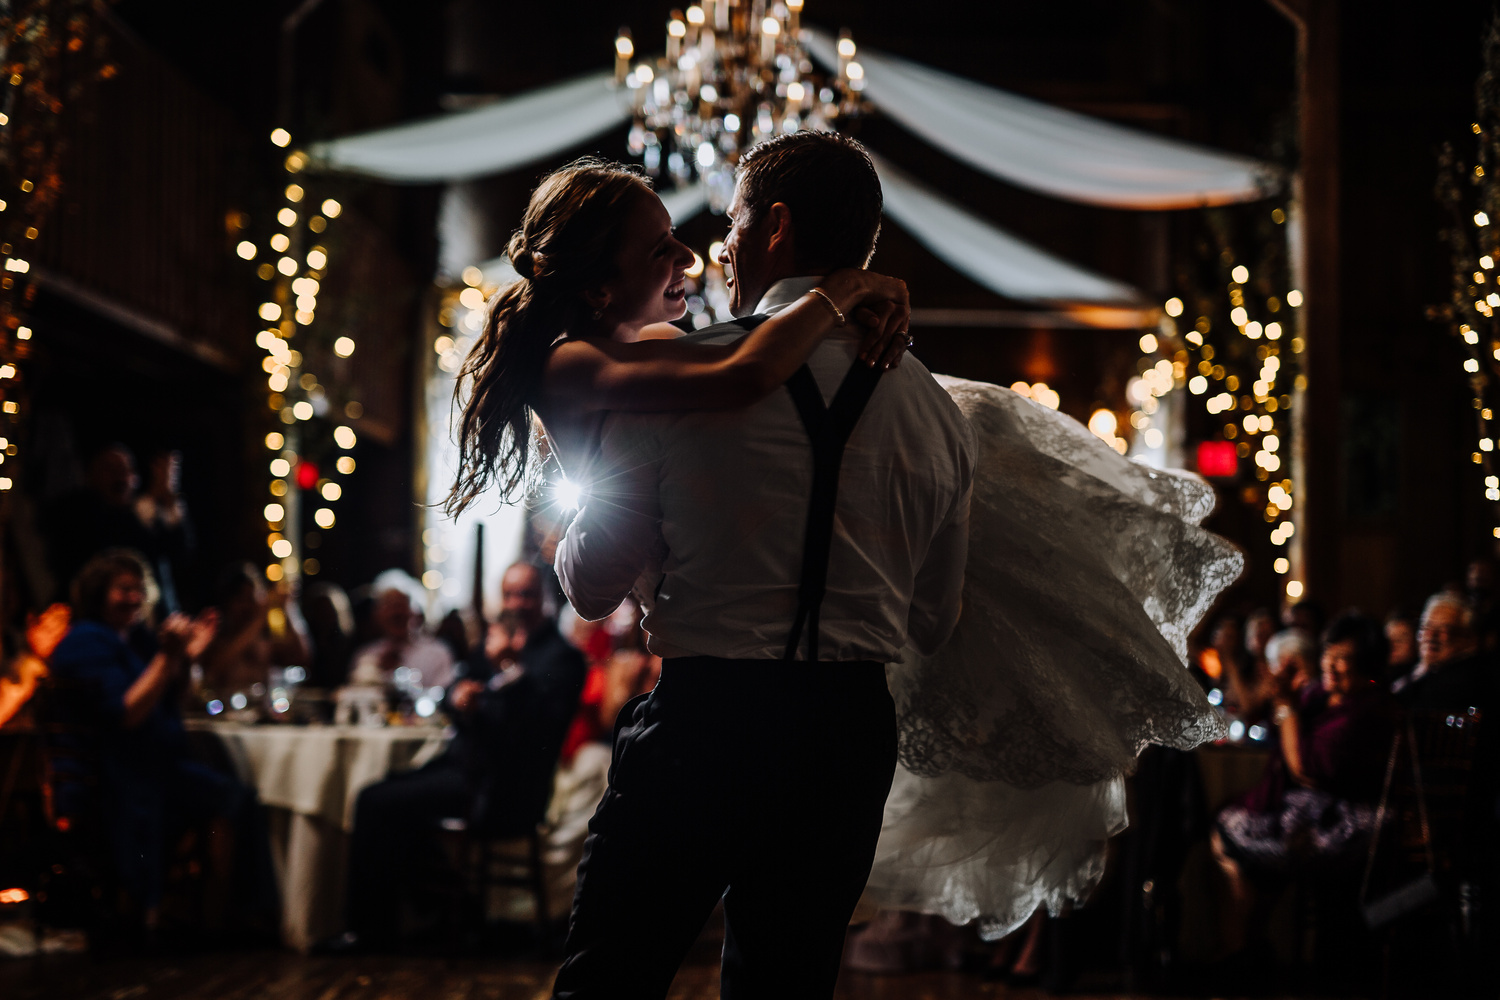 FIrst Dance by Graham Marley